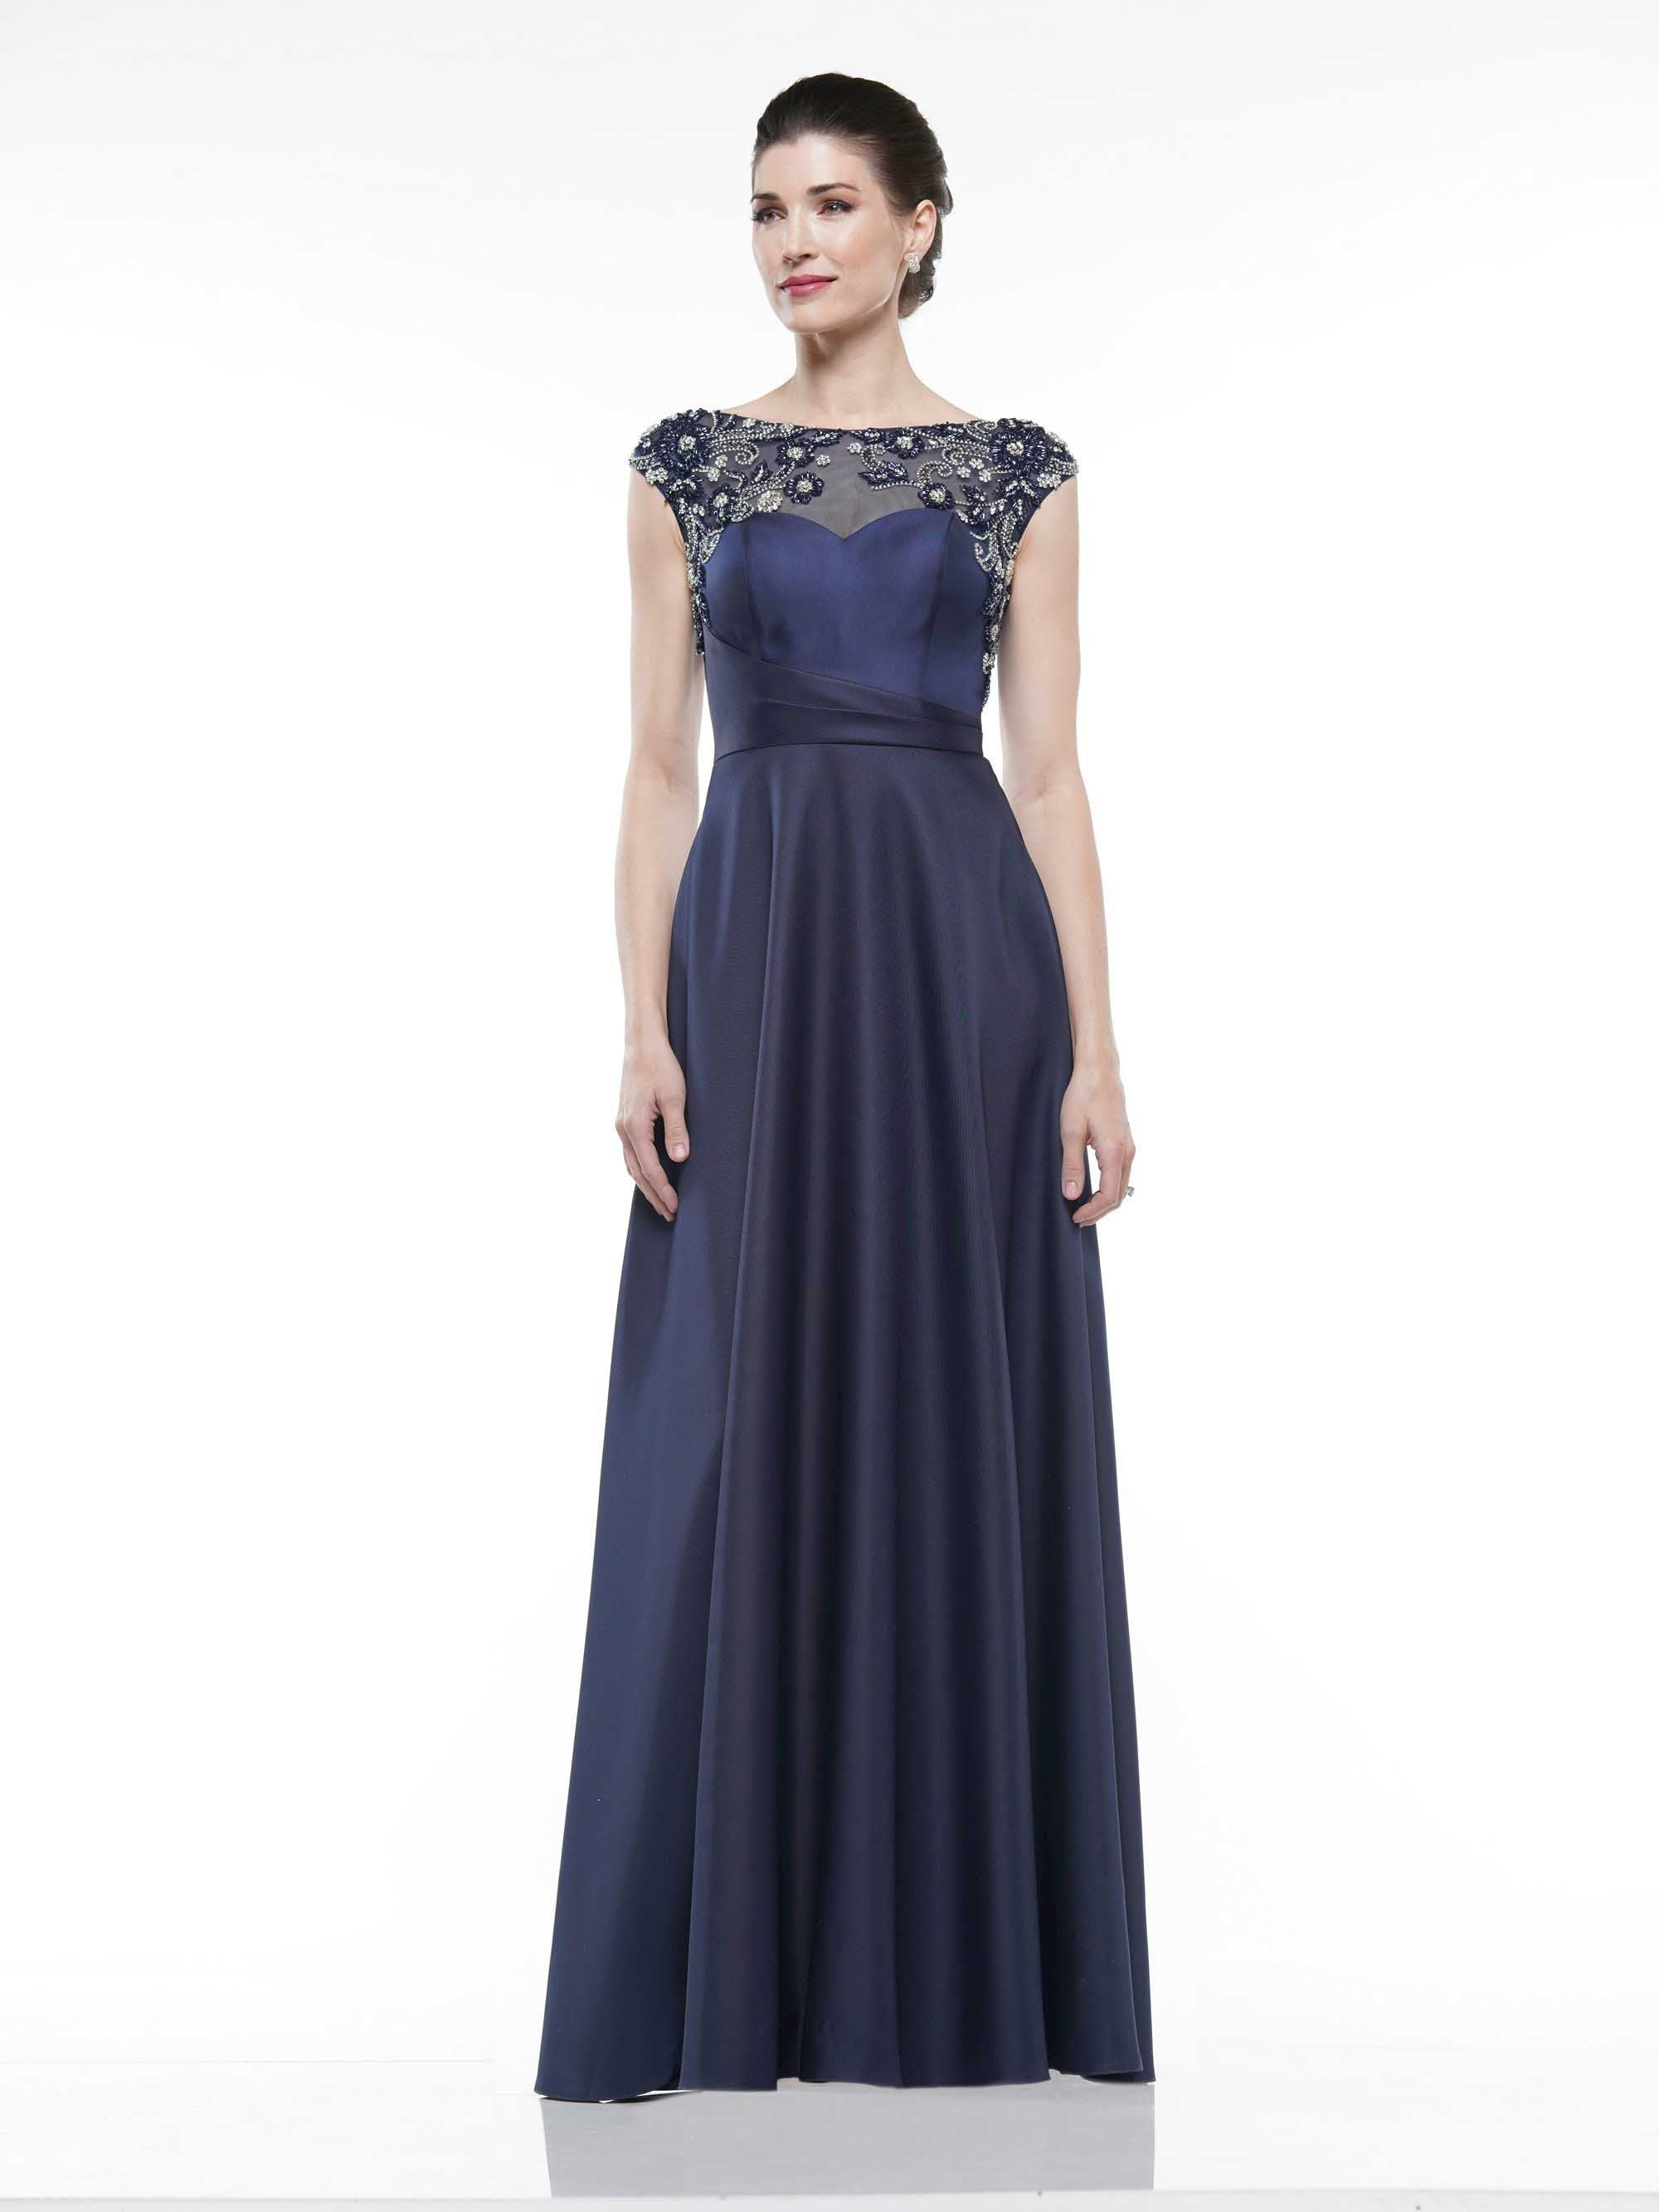 Marsoni By Colors - Cap Sleeve Beaded Illusion Bateau Satin Gown MV1005 In Blue